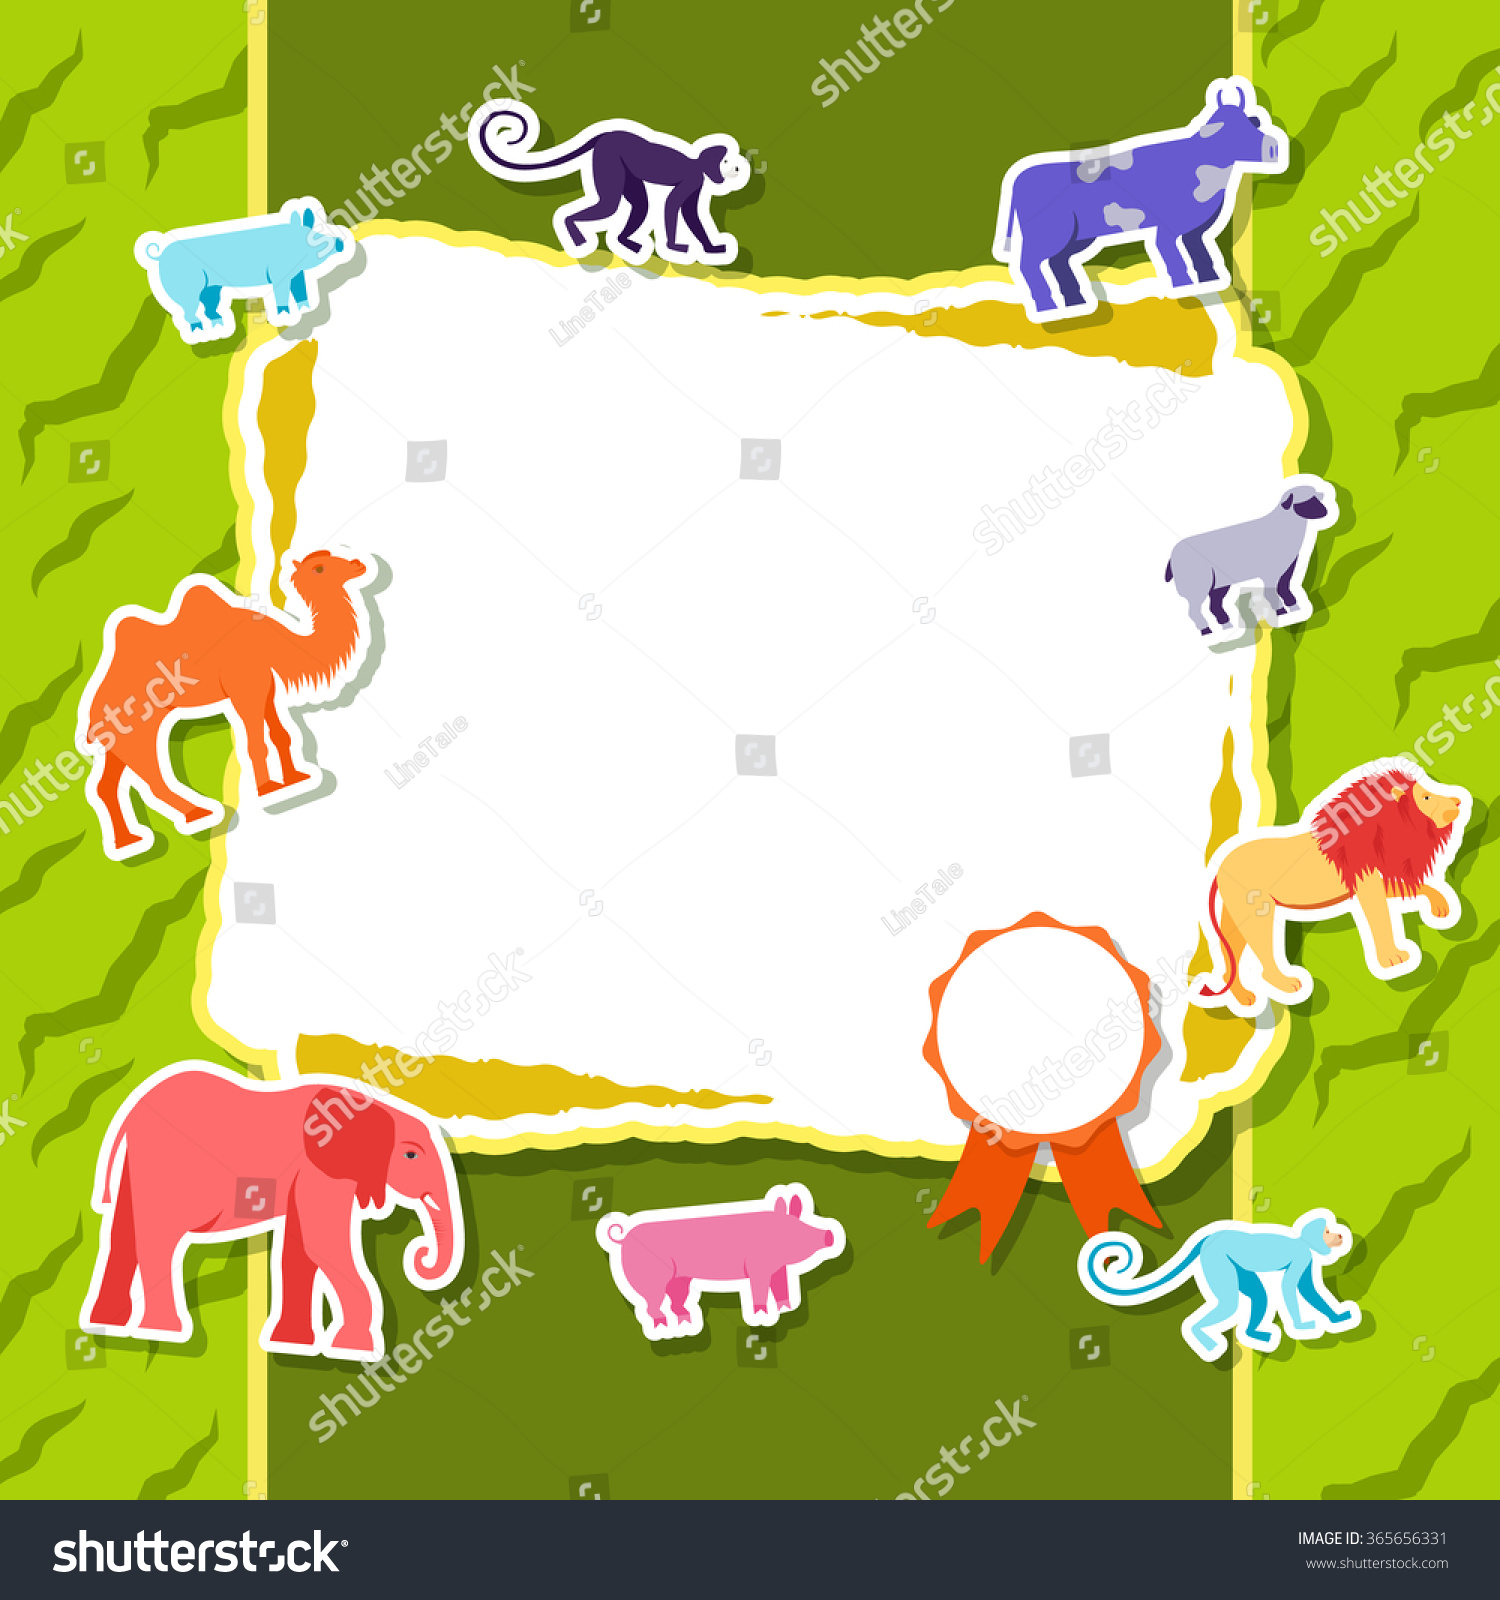 Zoo poster design - Zoo Animals Elements On Green Background Poster In Sticker Style Design Illustration Template Card Concept